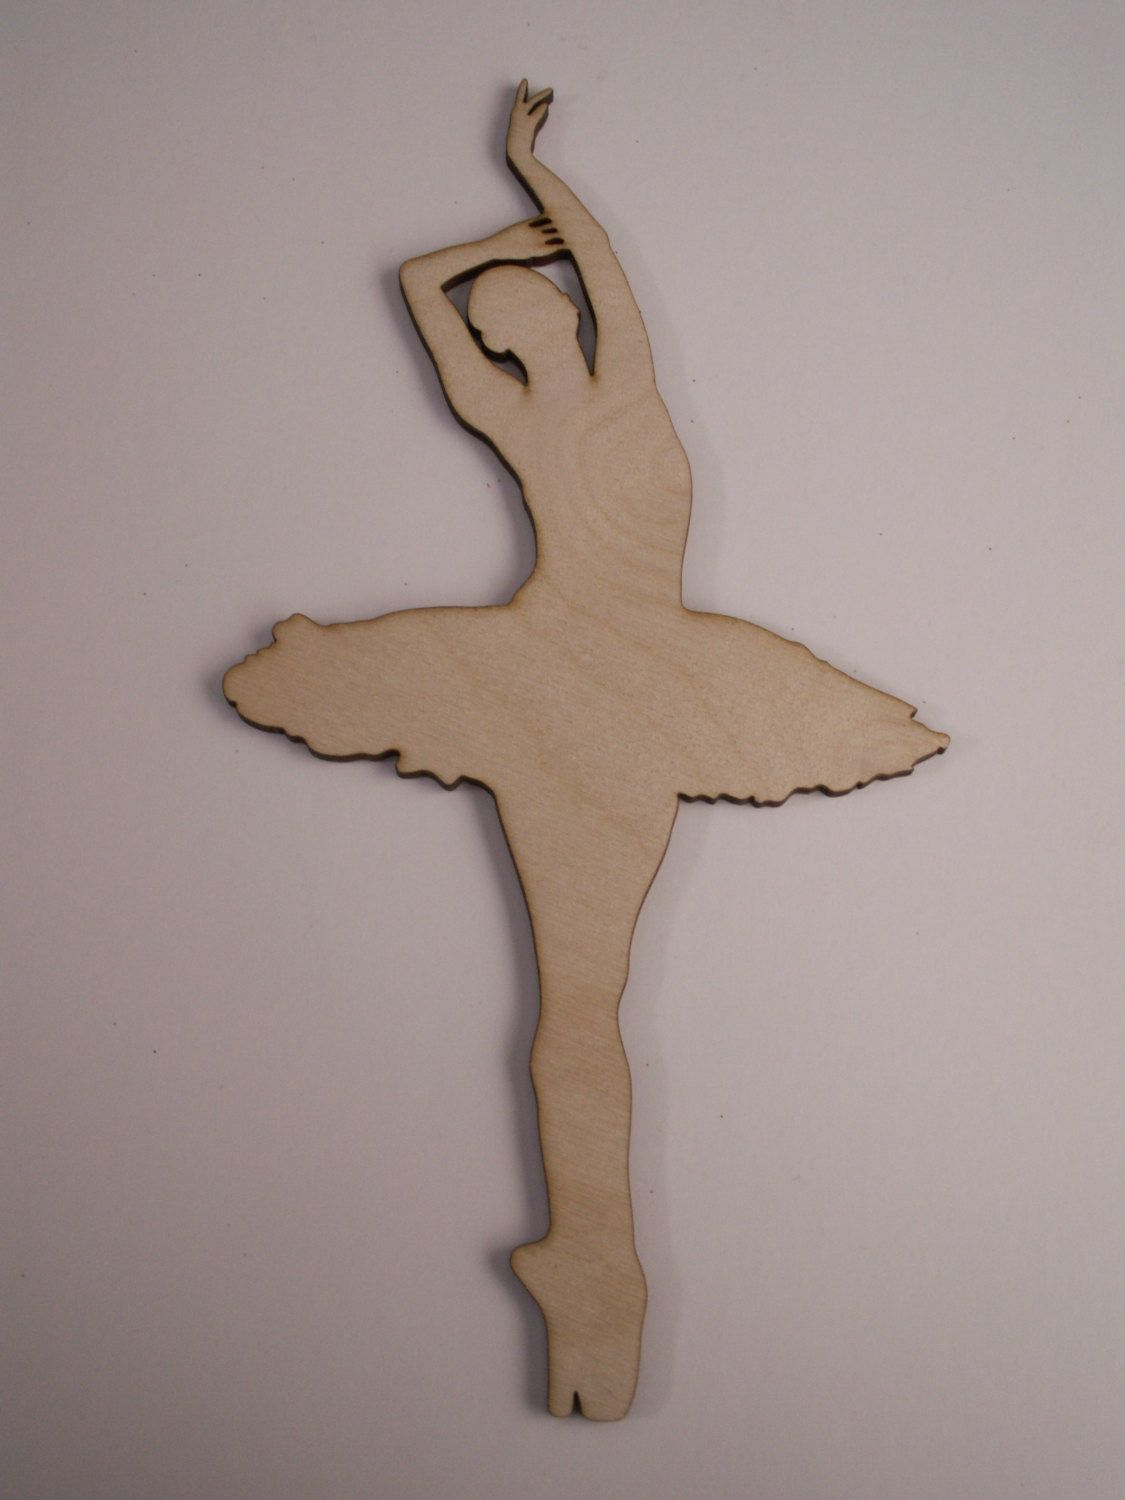 Painted wooden shapes for crafts - Find This Pin And More On Wood Art And Craft